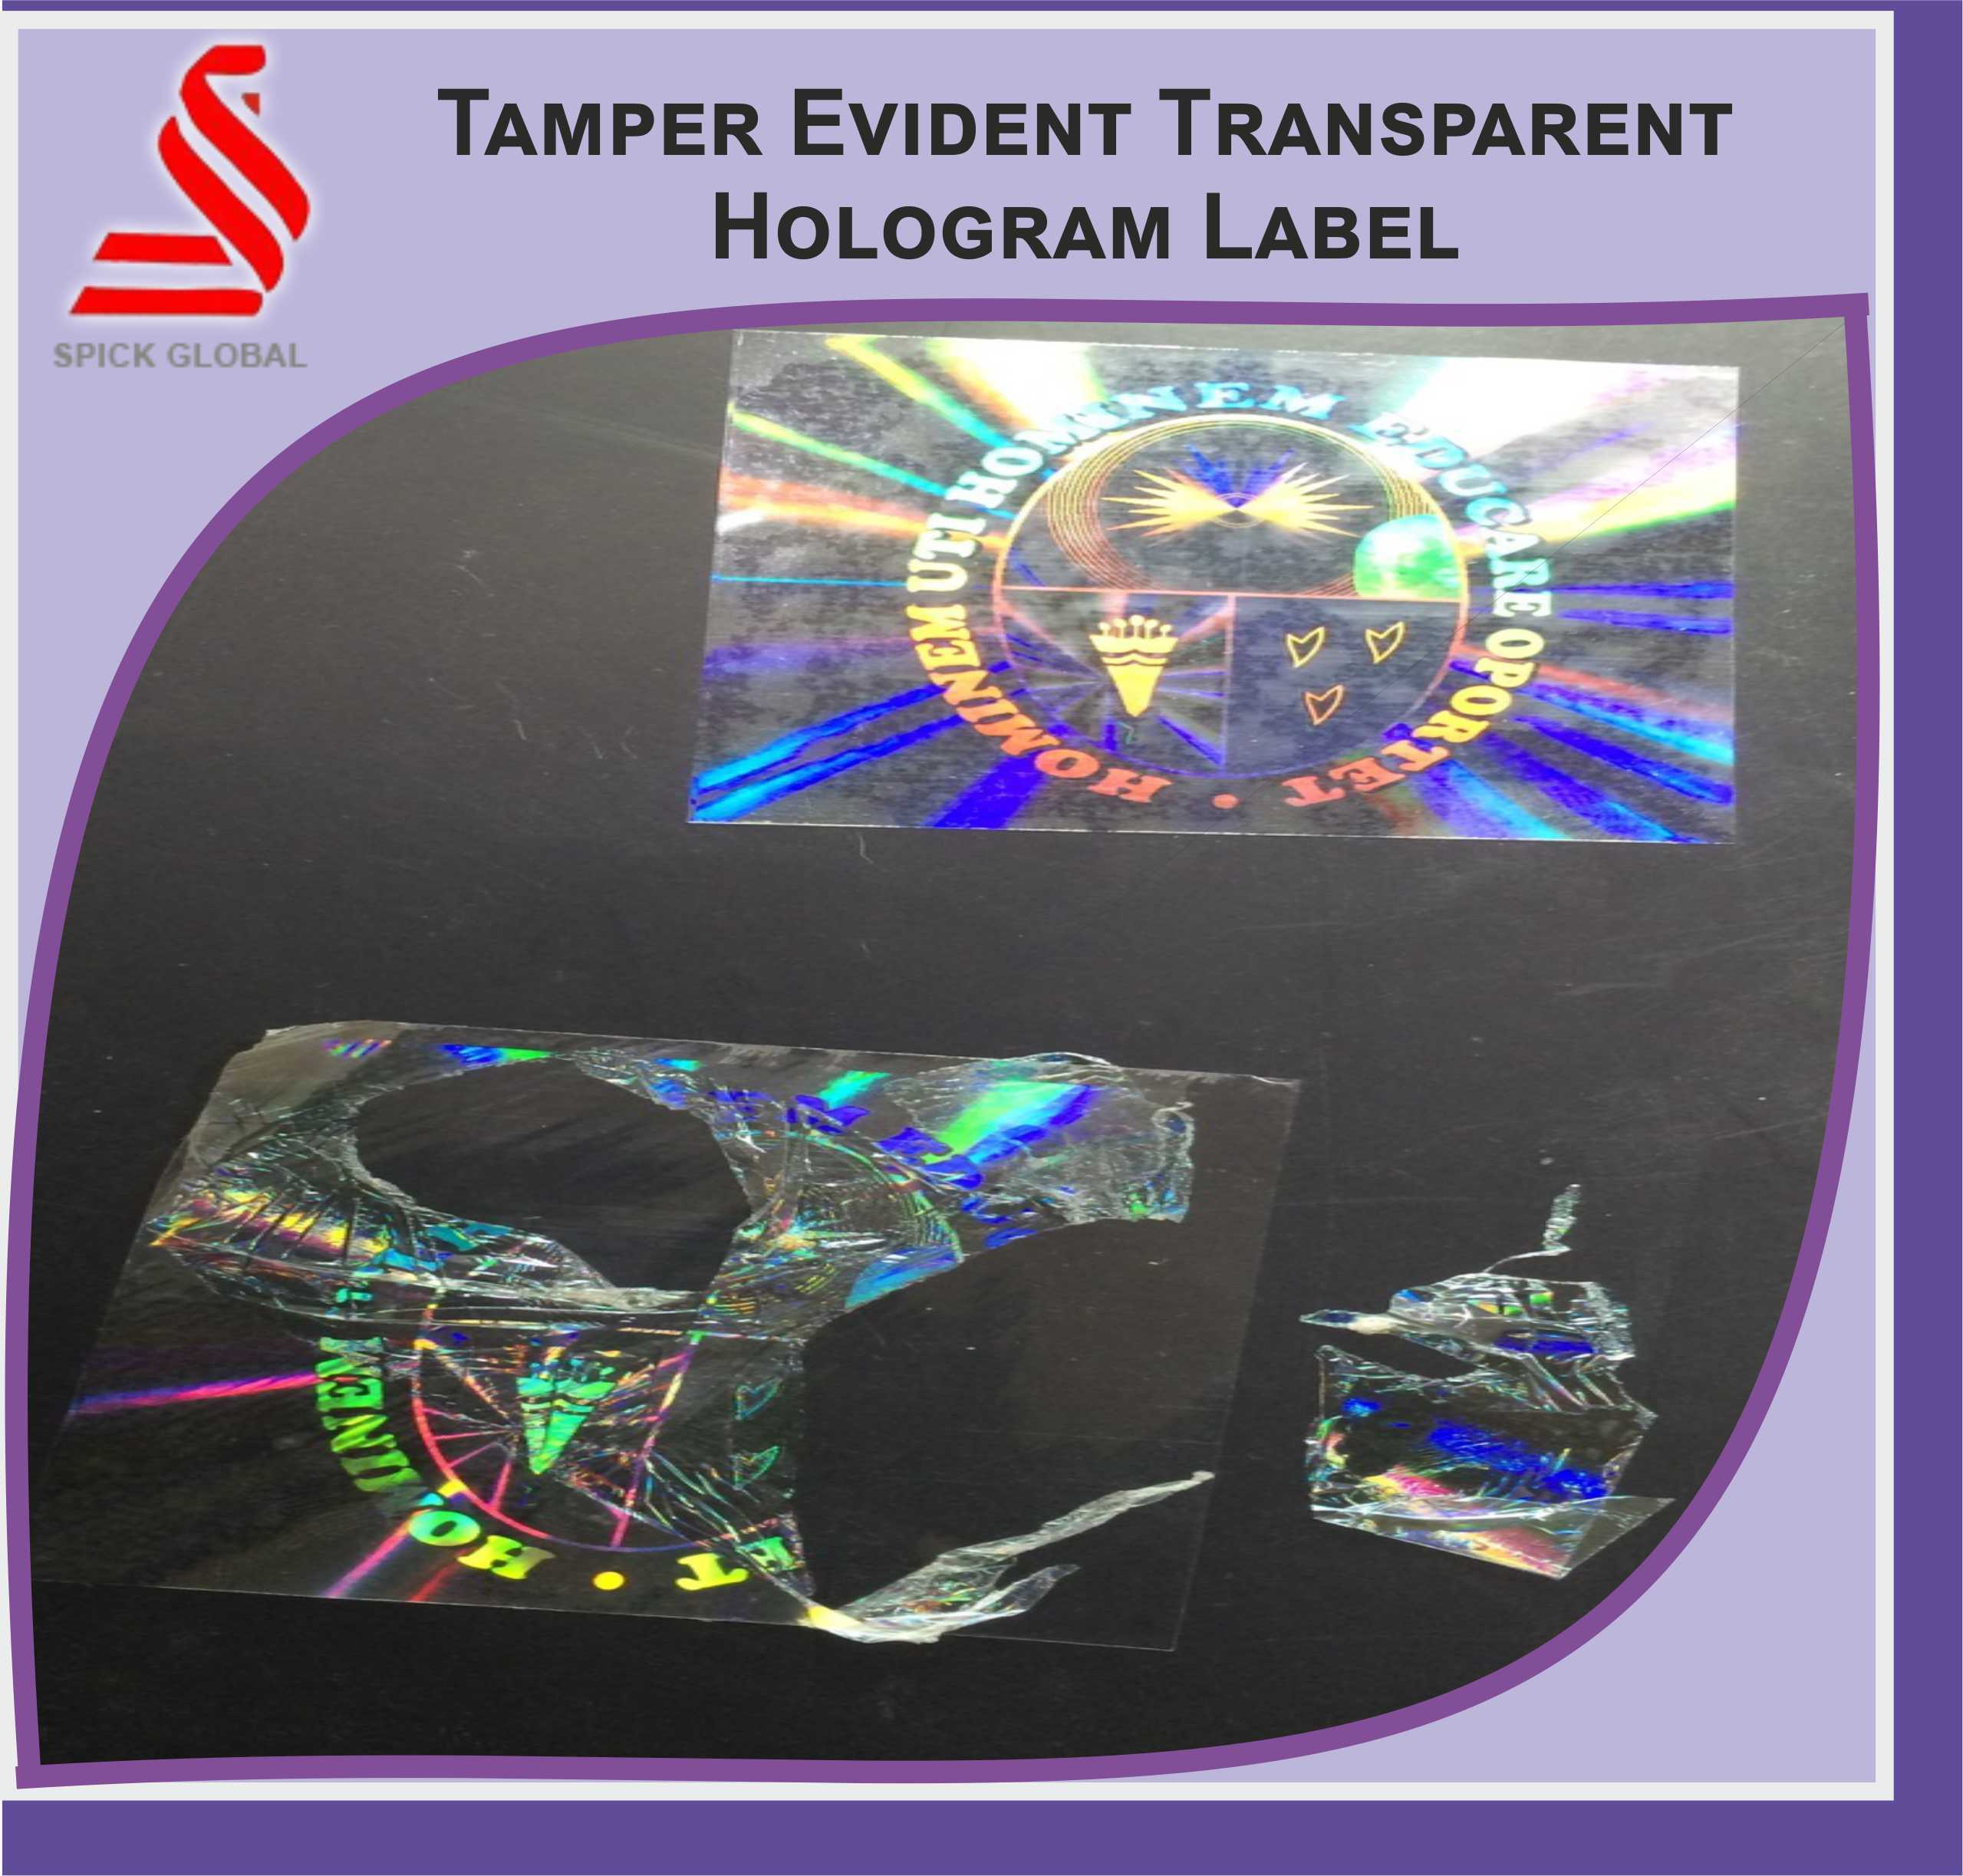 Spick global hologram tamper proof sticker labels packaging type cartons